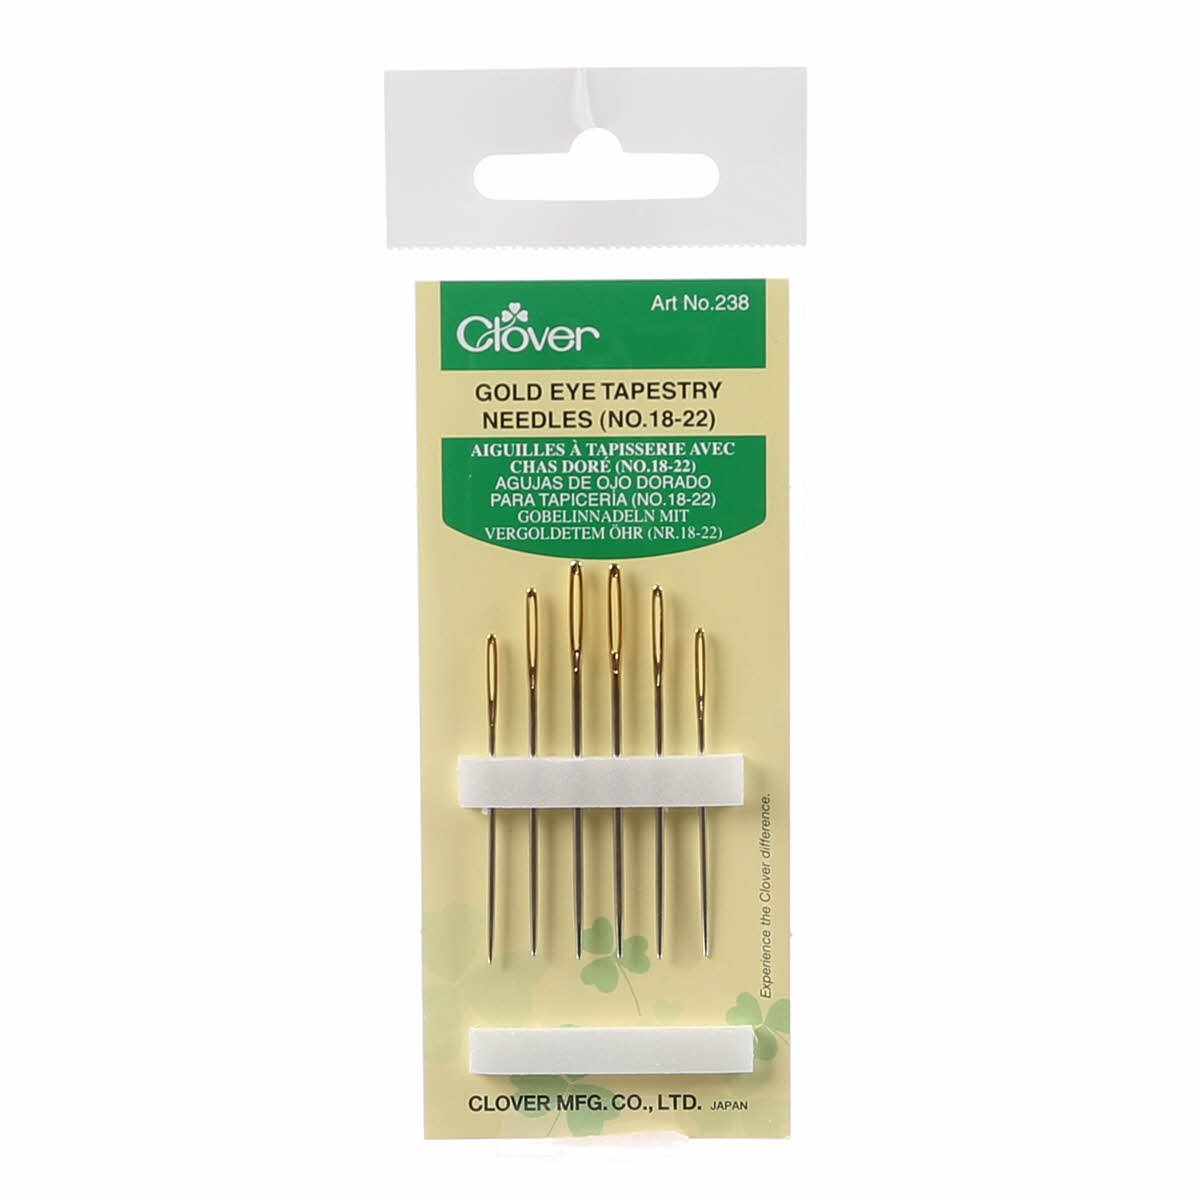 Clover Tapestry Gold Eye Needles Assorted Sizes 18-22 6ct